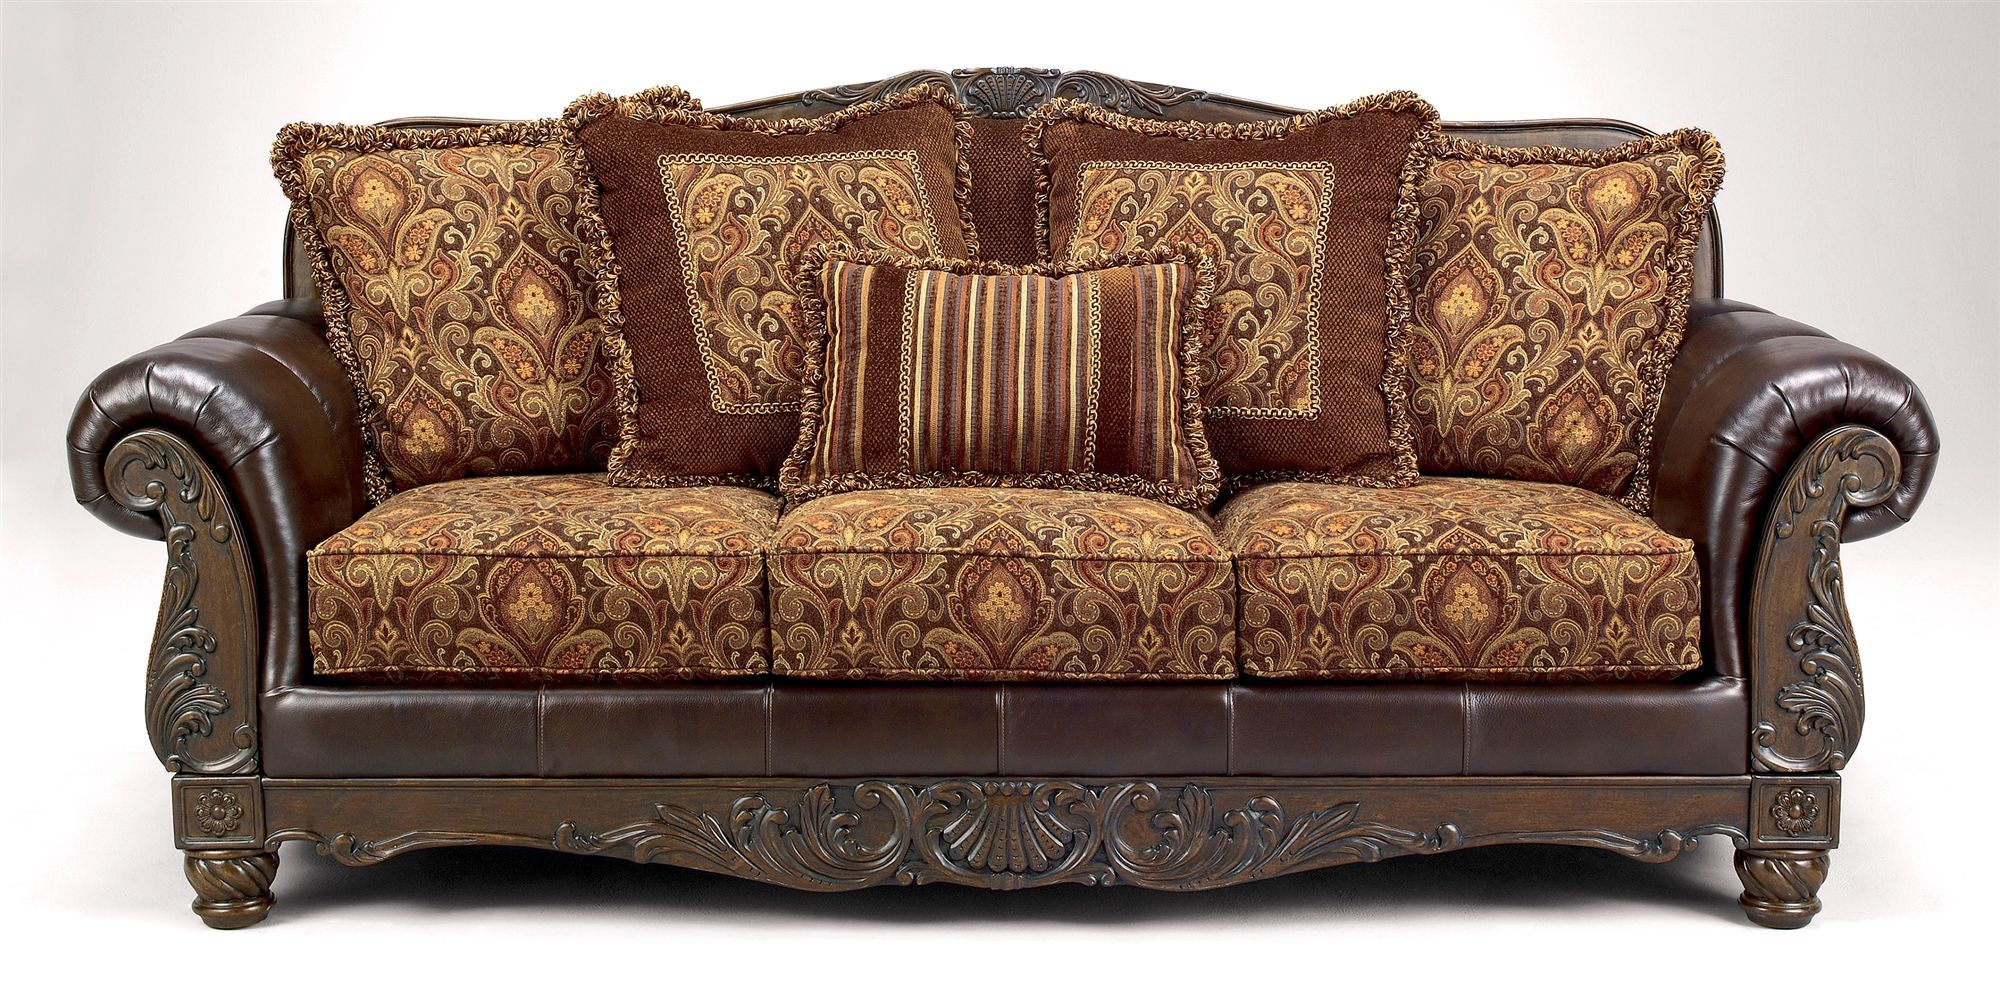 Buy Low Price Signet By IvgStores Carved Wood Sofa W Truffle Finish U0026  Multicolor Pillows (